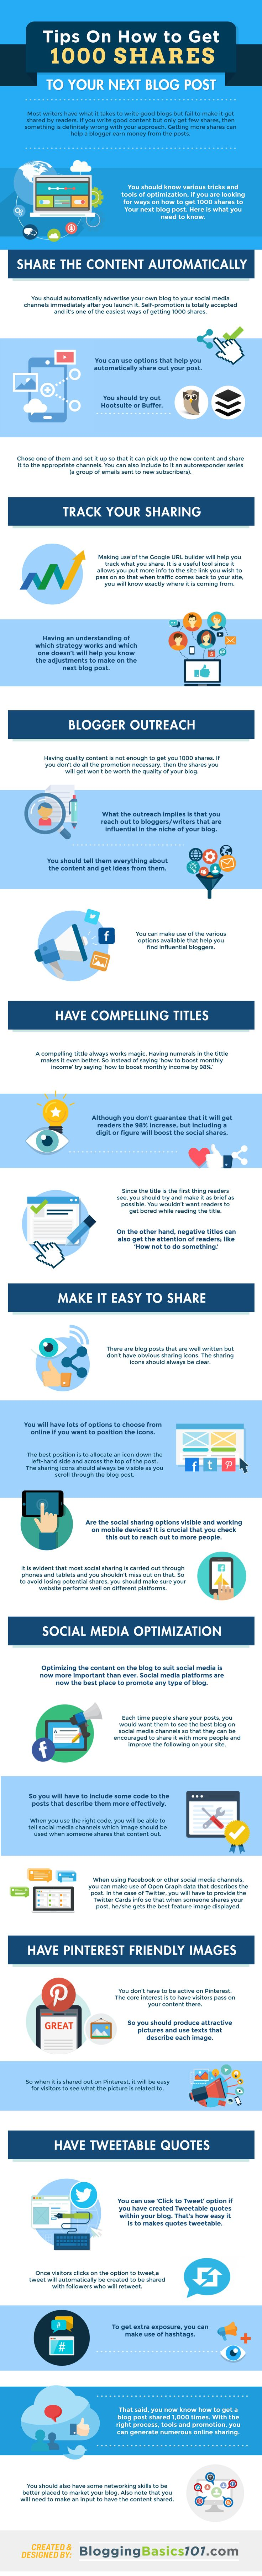 How to Get 1000 Shares to Your Next Blog Post - infographic